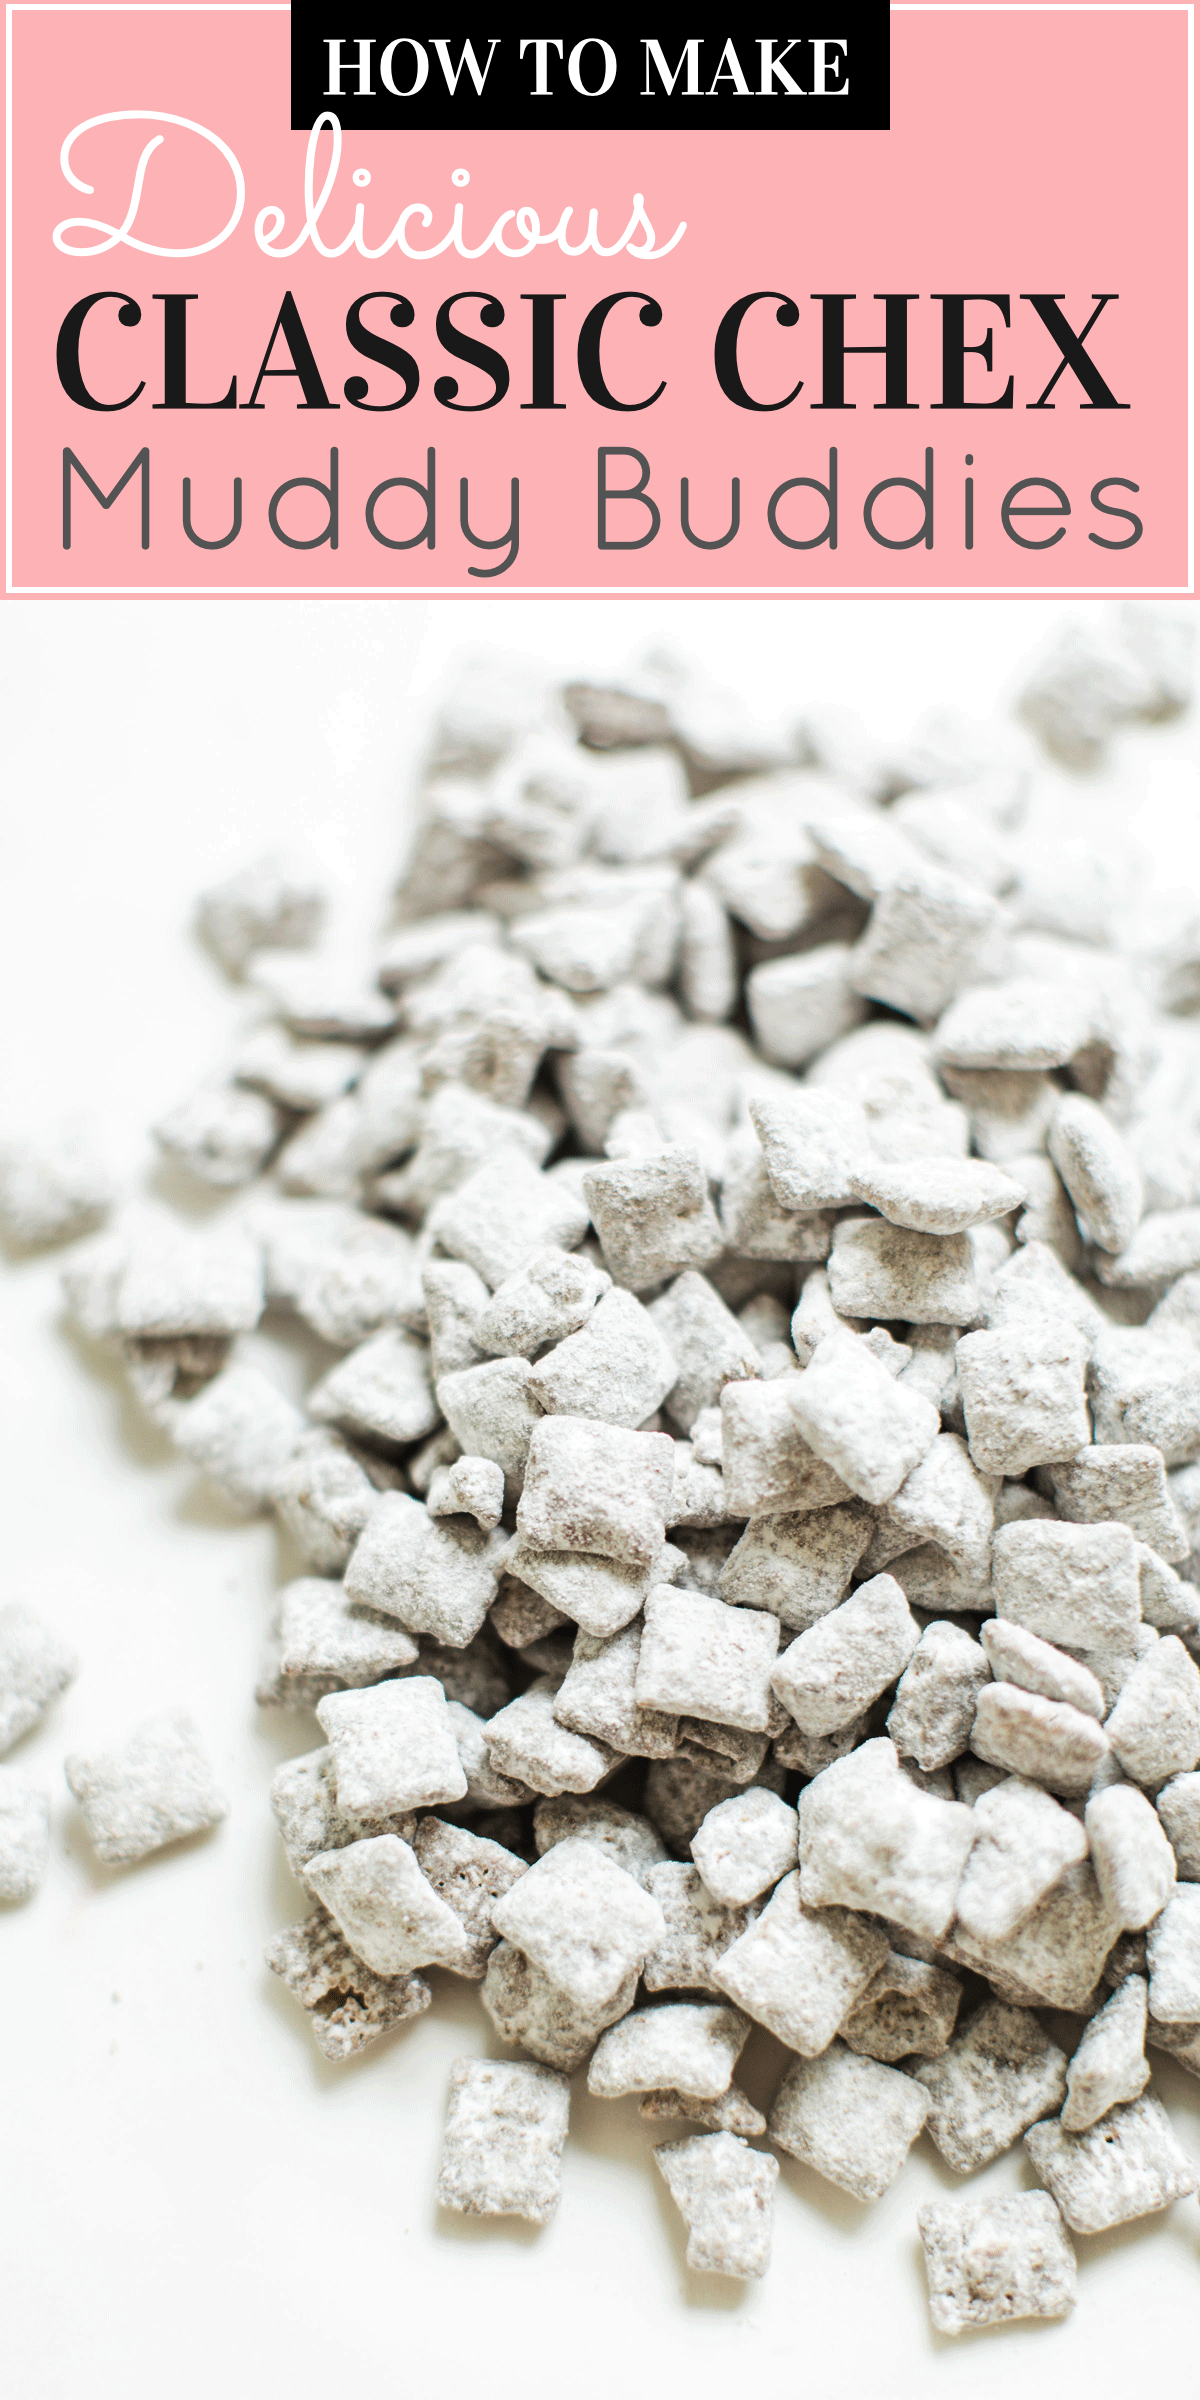 uppy Chow Muddy Buddies - comes together in minutes, is no-bake, and can be made up in big batches - perfect for gifting! Click through for the recipe. #muddybuddies #puppychow #holidayrecipe #holidaygift #dairyfree #vegan #vegandessert   glitterinc.com   @glitterinc